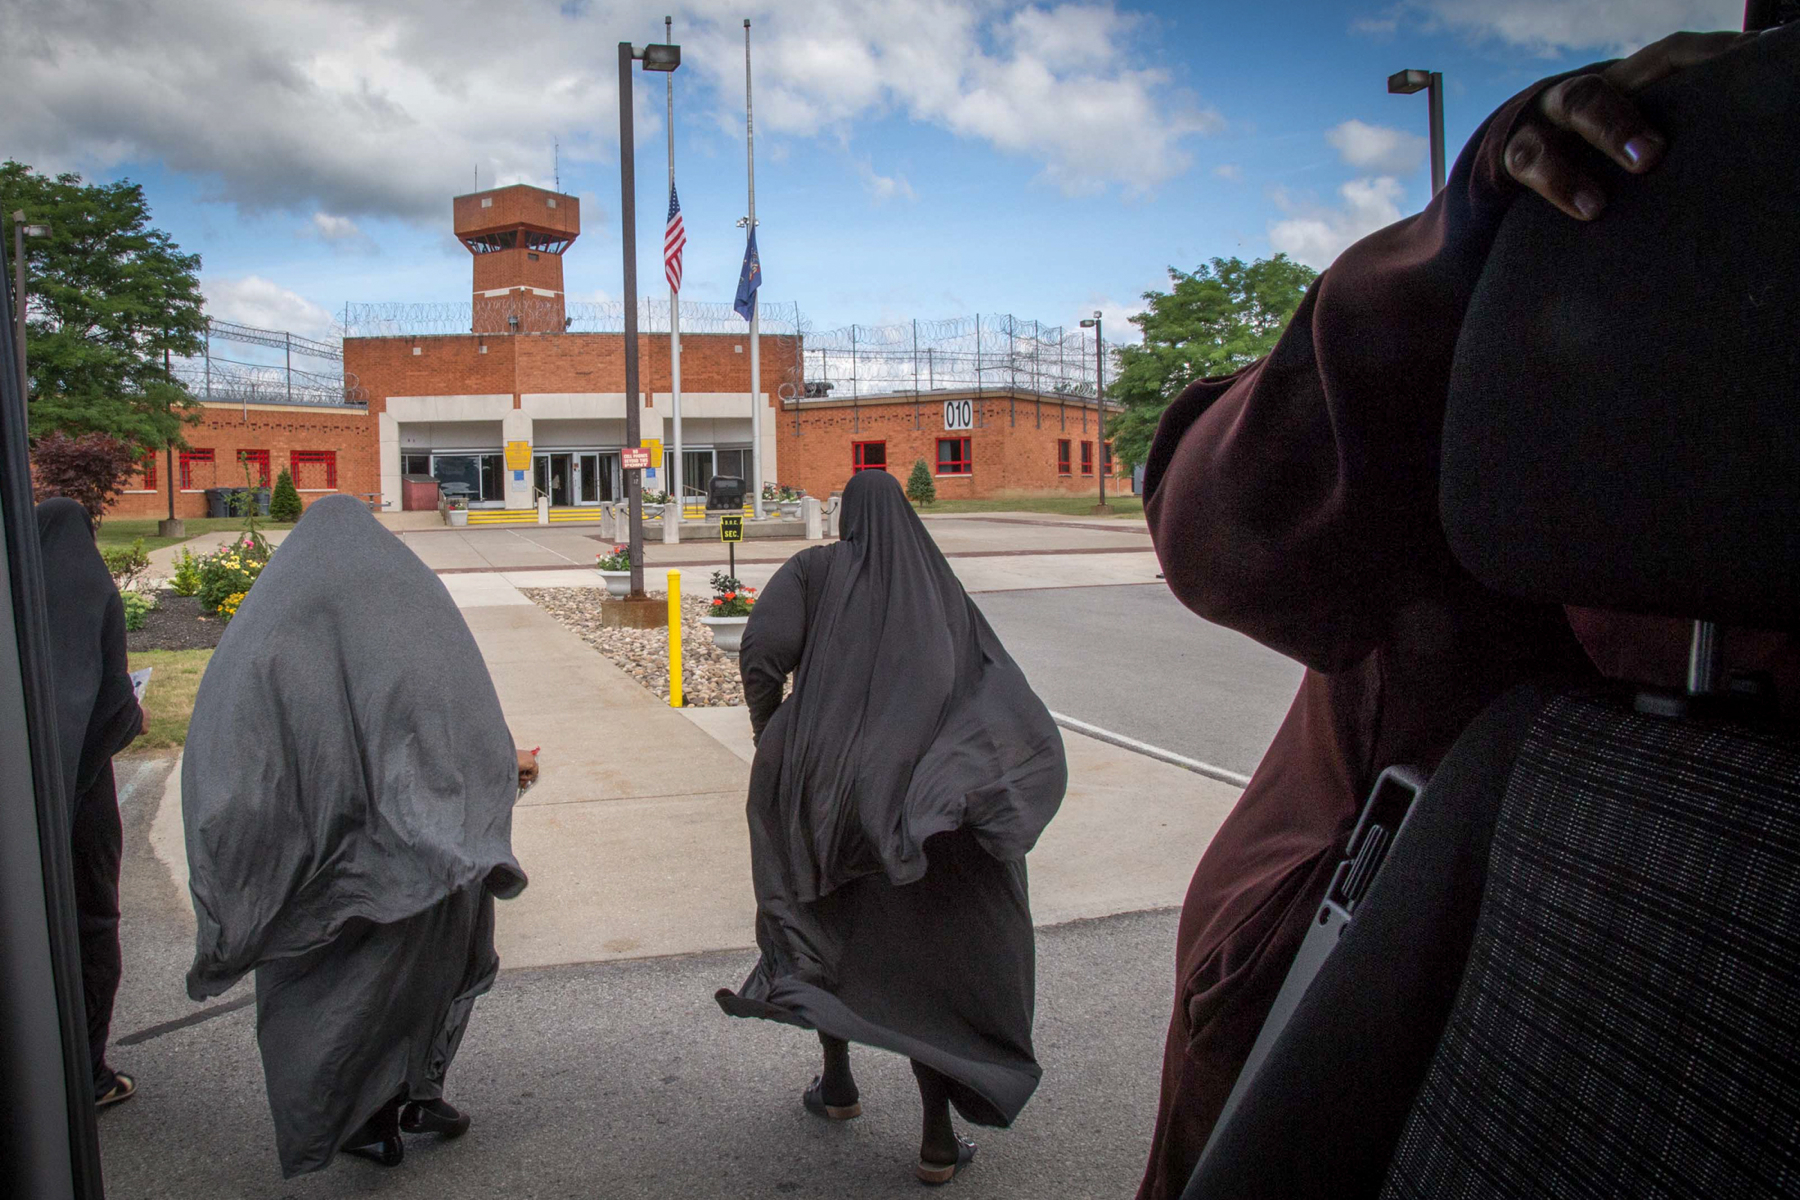 Aisha, Tysheen and Tanesha run toward the doors of Smithfield prison, not wanting to waste a moment of their visiting day. The vans drop off between 9 a.m. and 10 a.m., and return when the visits let out between 3 p.m. and 3:30 p.m.